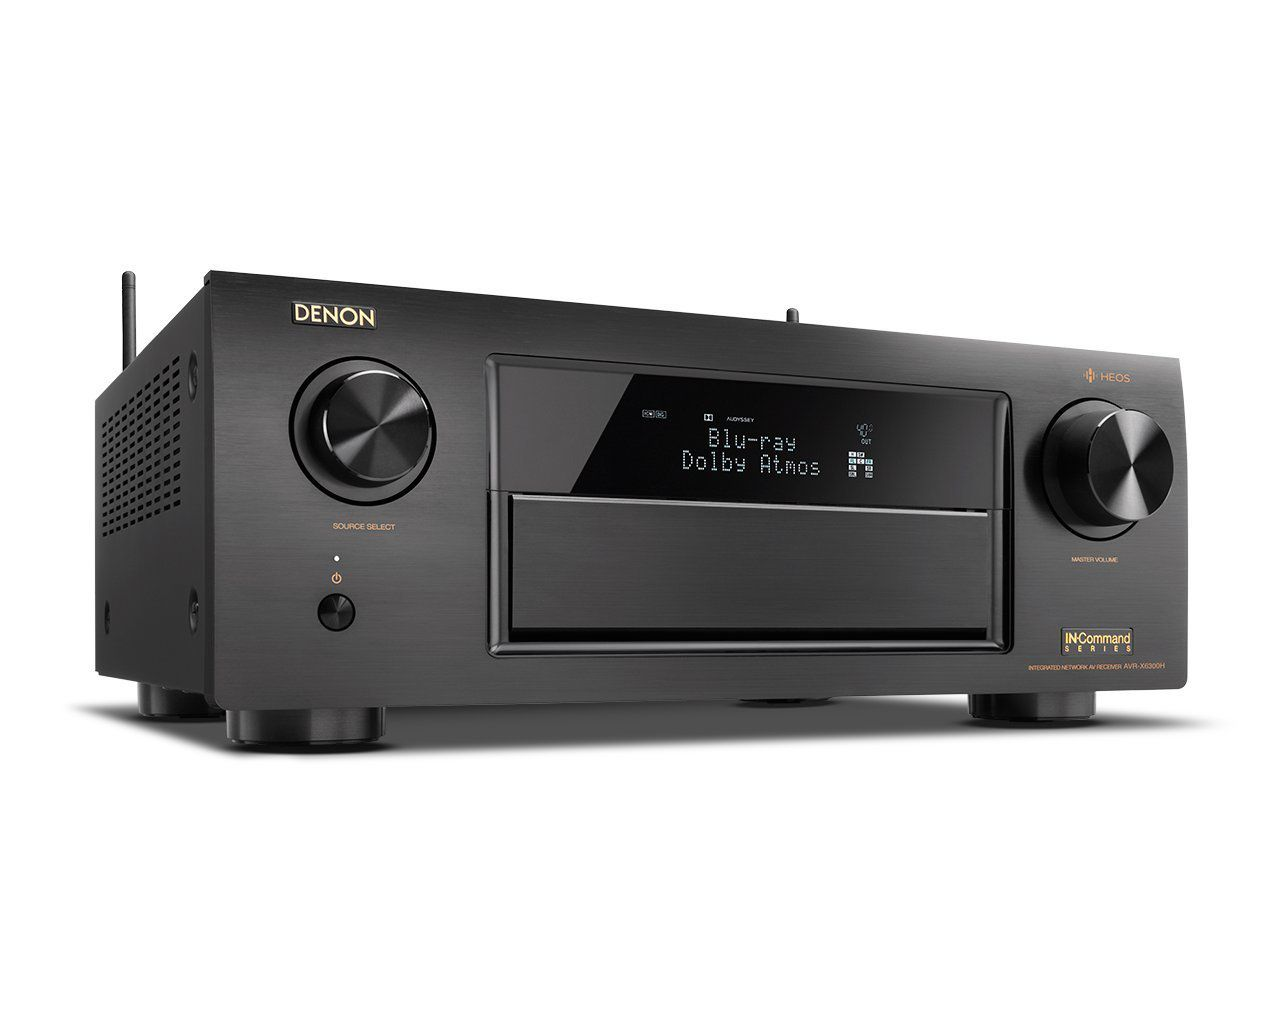 The 10 Best Stereo Receivers of 2019